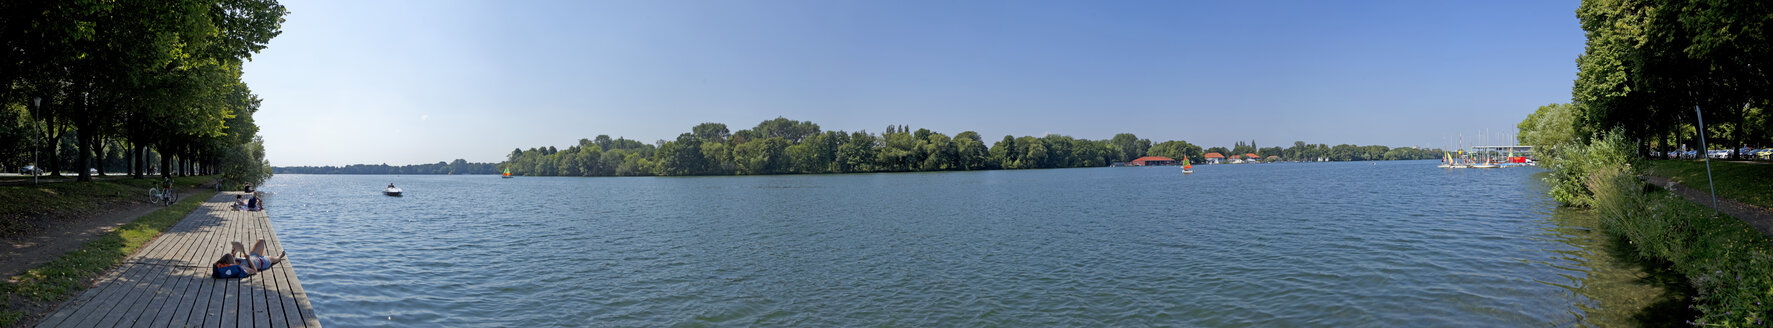 Germany, Hannover, Panoramic view of Lake Maschsee - KLR000325